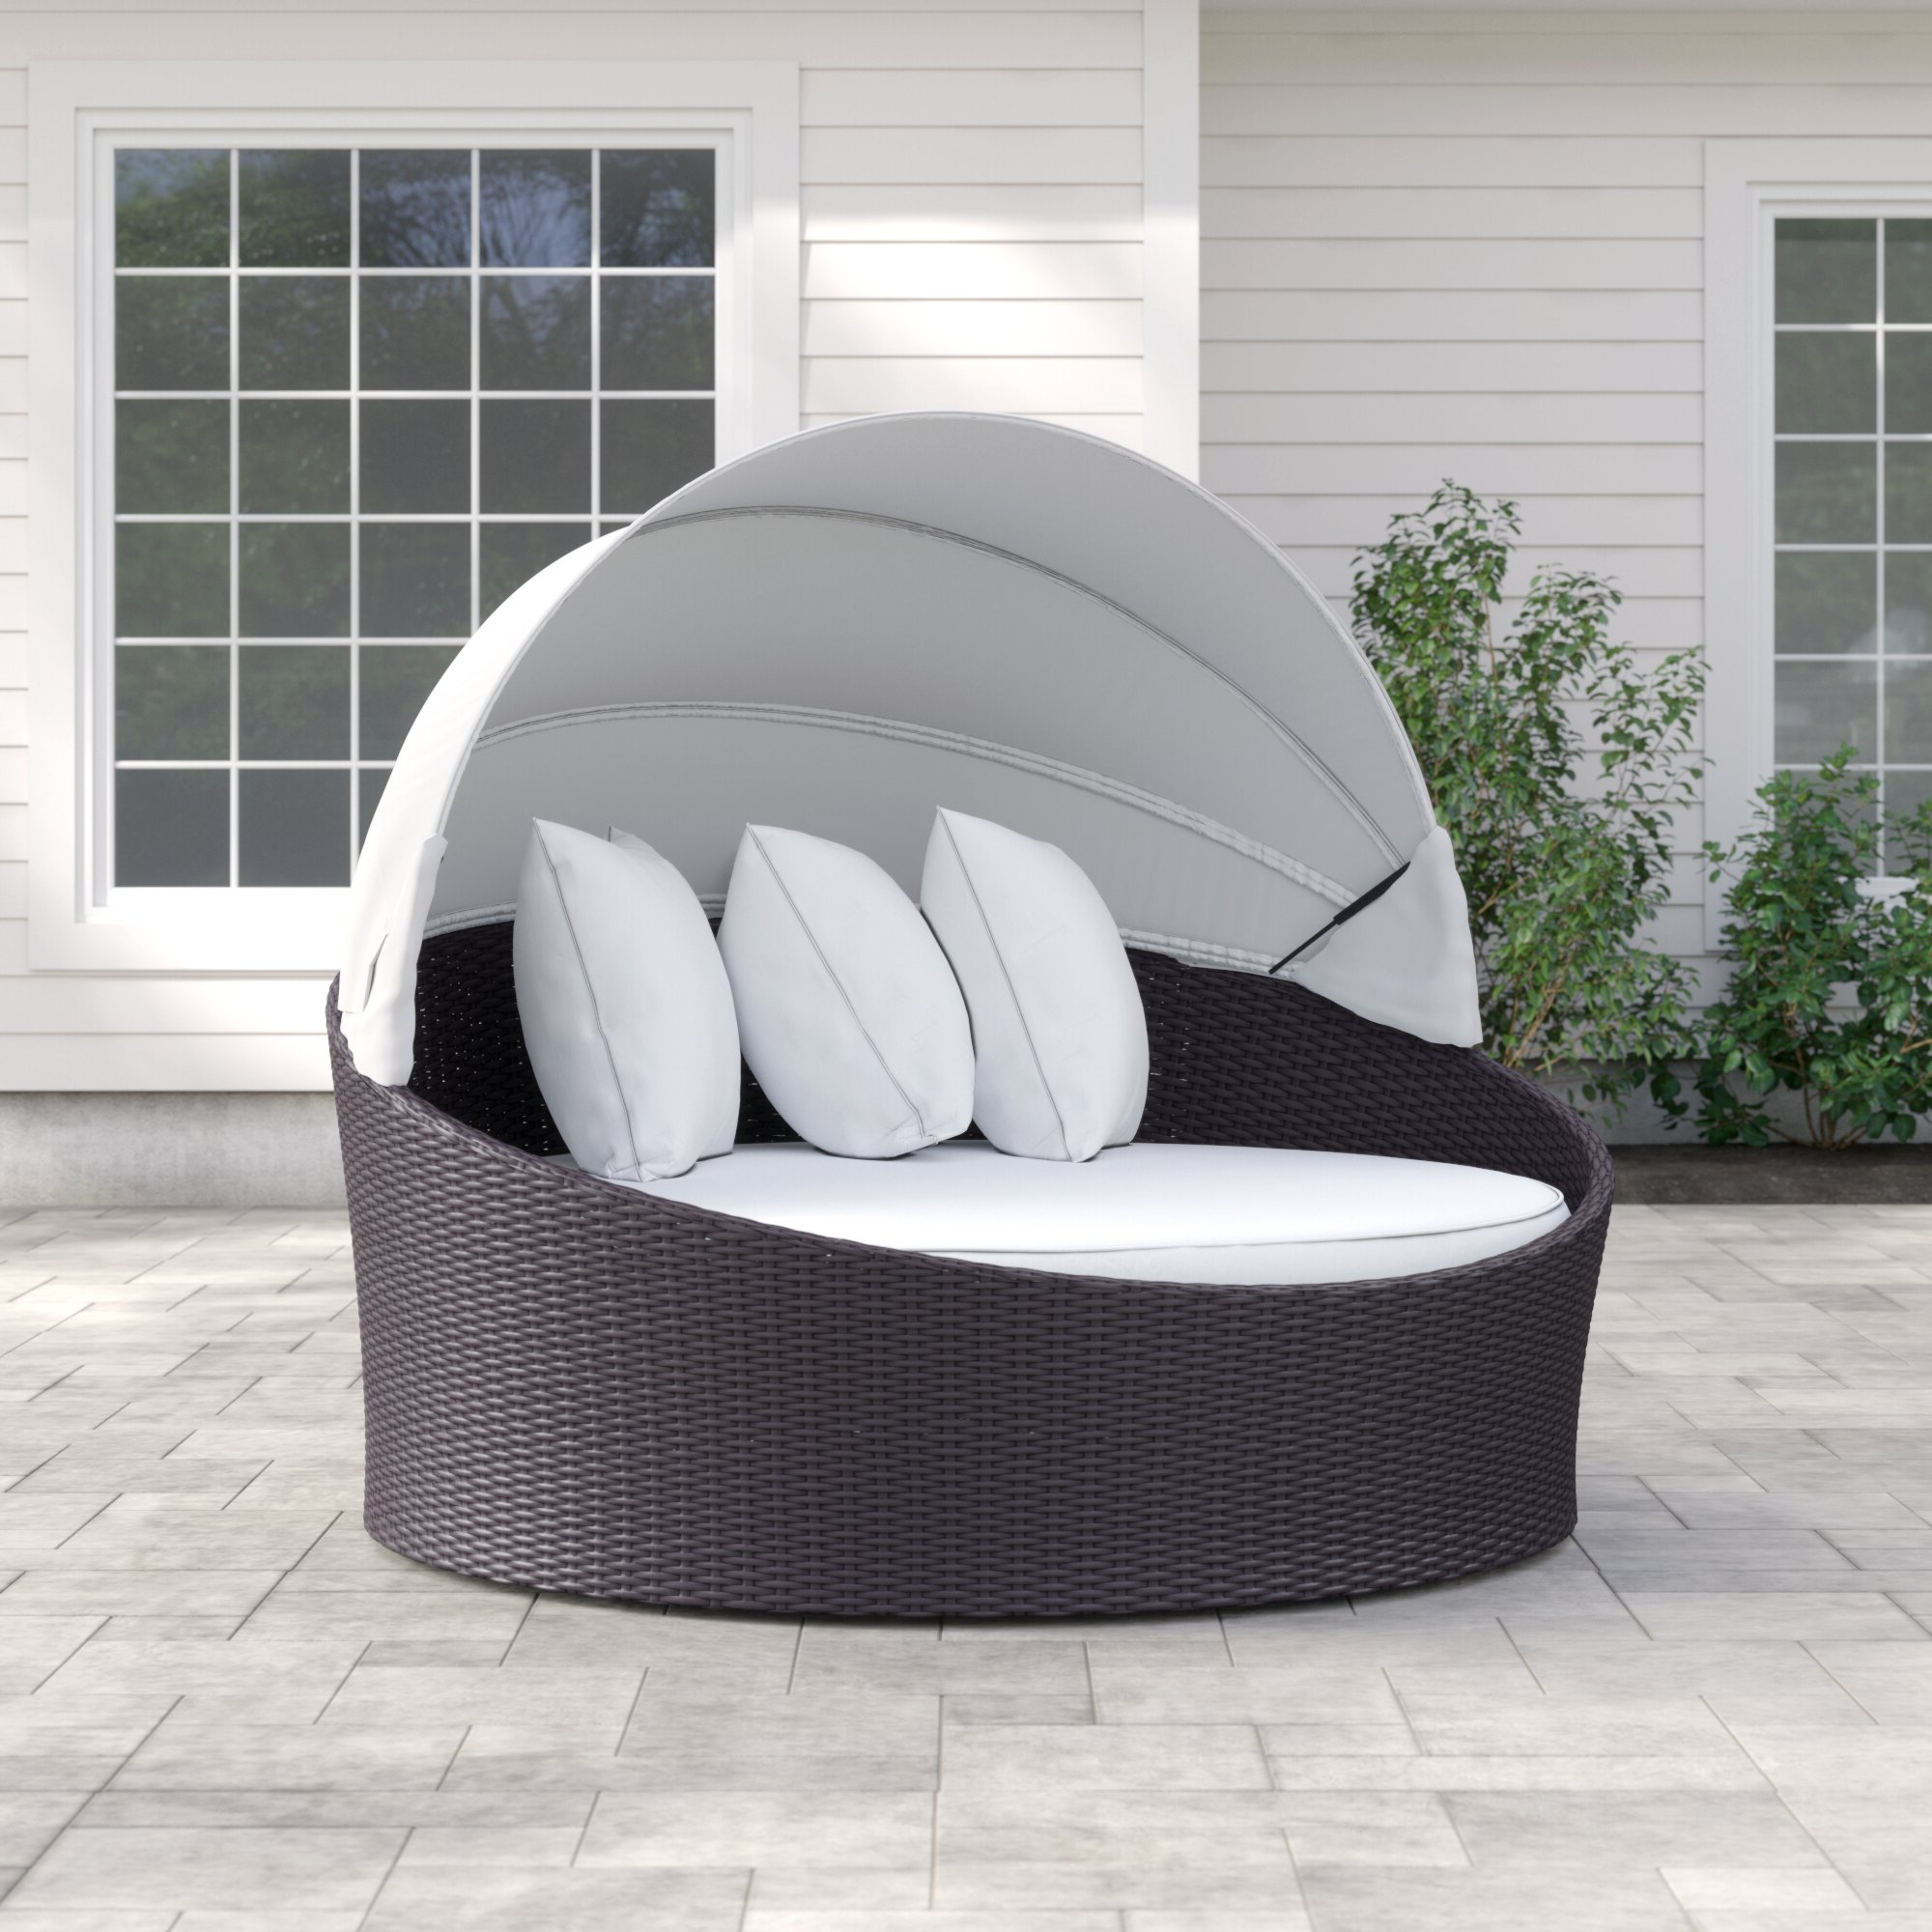 Well Known Harlow Patio Daybeds With Cushions In Brentwood Canopy Patio Daybed With Cushions (View 20 of 20)